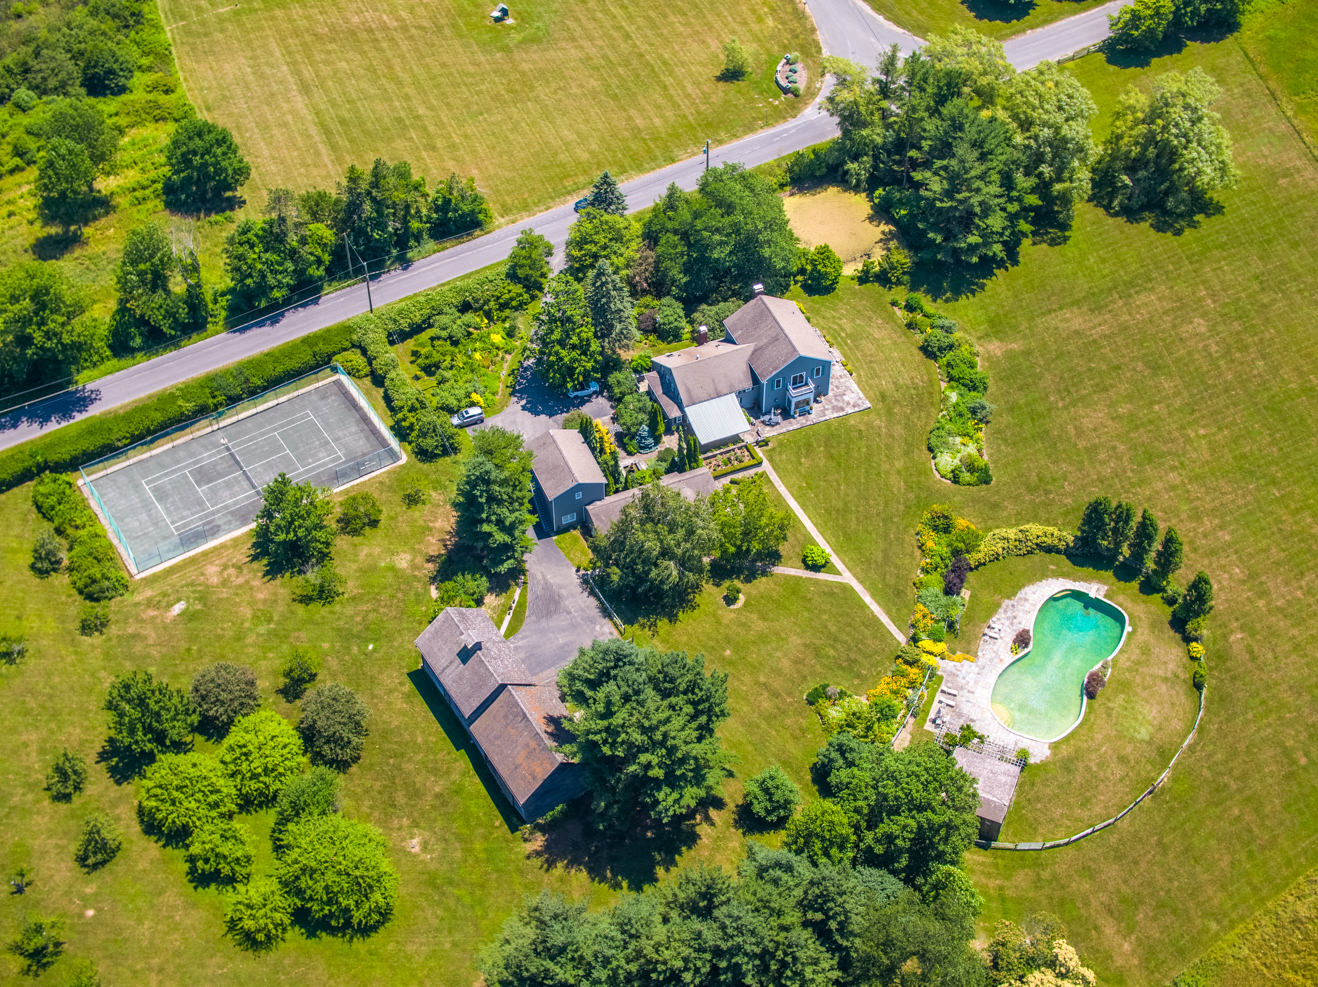 Real Estate video production in Connecticut, Massachusetts, New York. Photoflight Aerial Media